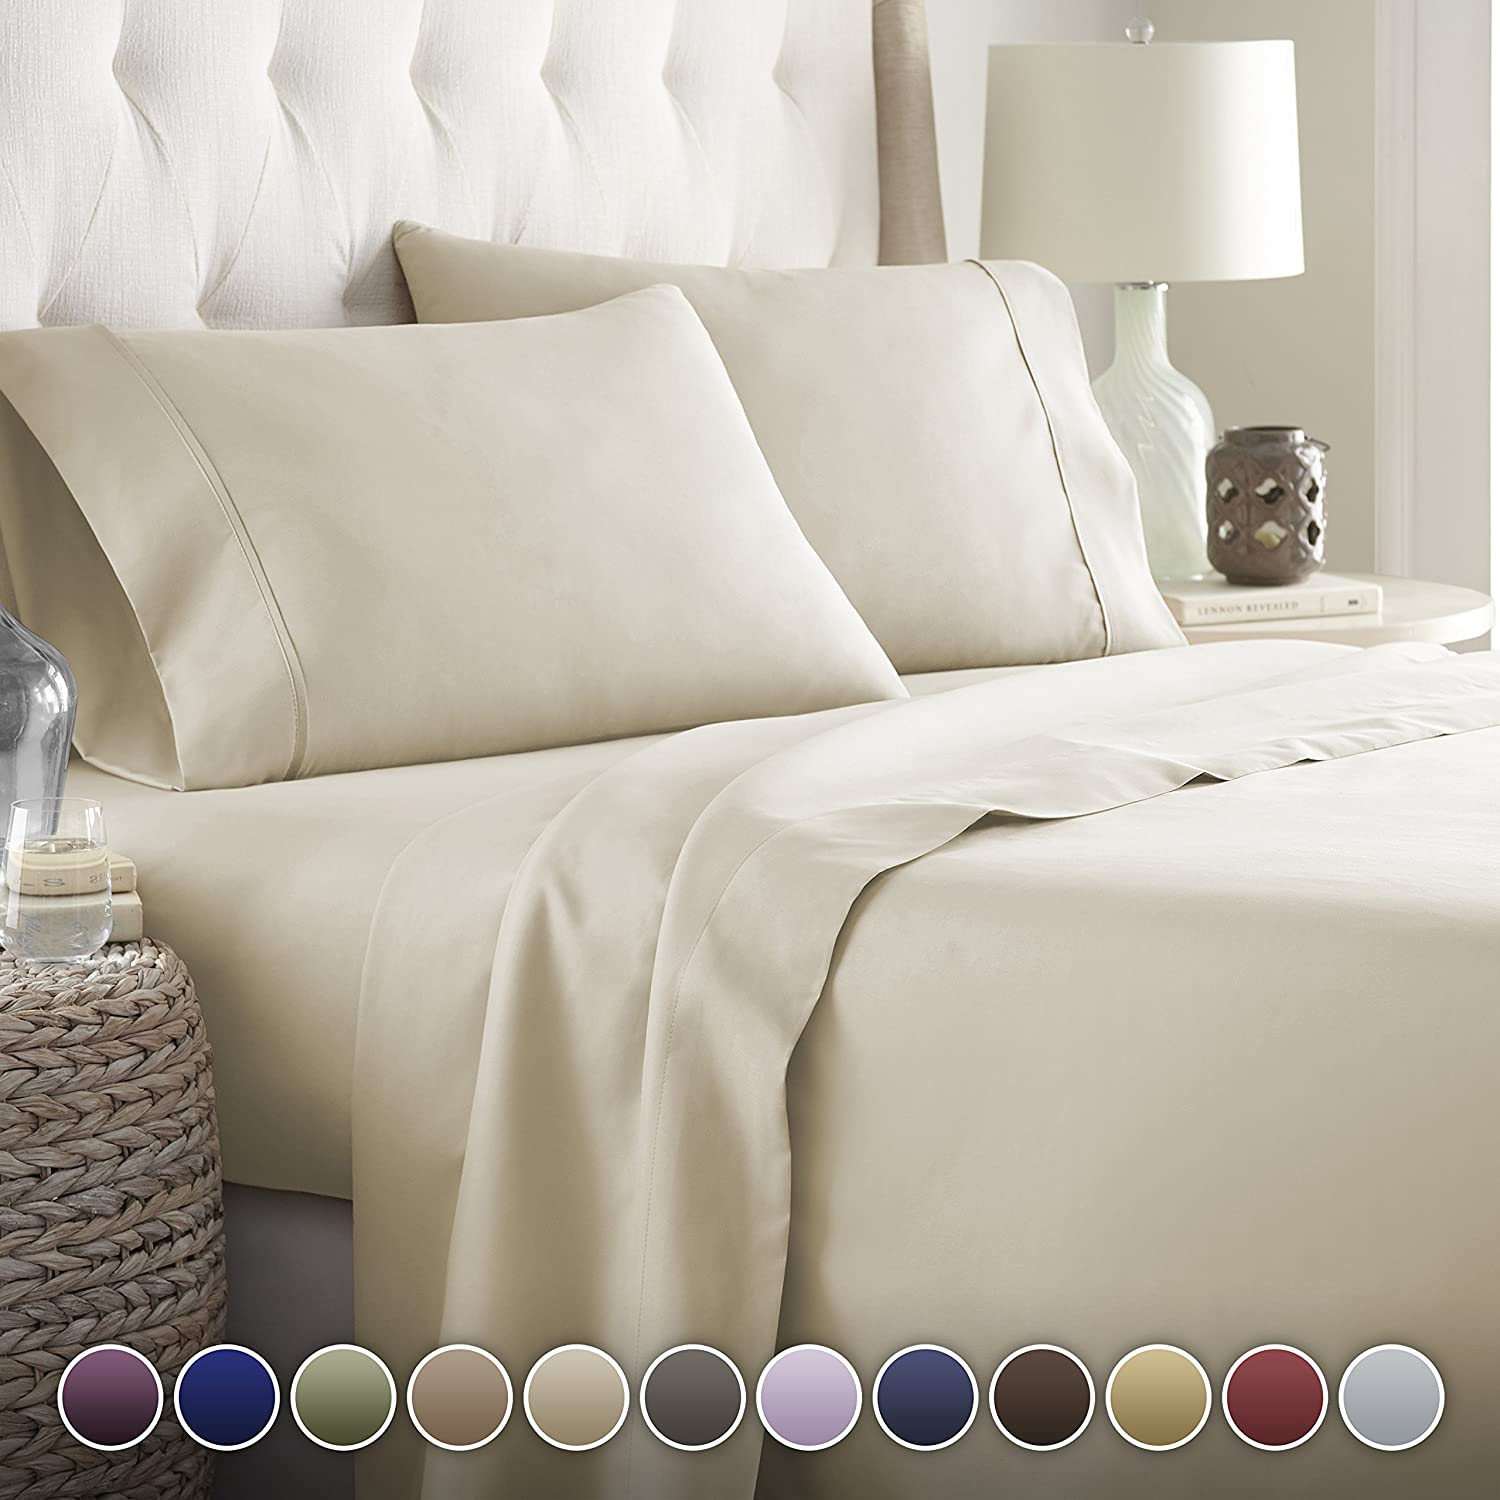 Hotel Luxury Bed Sheets Set- 1800 Series Platinum Collection-Deep Pocket,Wrinkle & Fade Resistant (King,Cream)